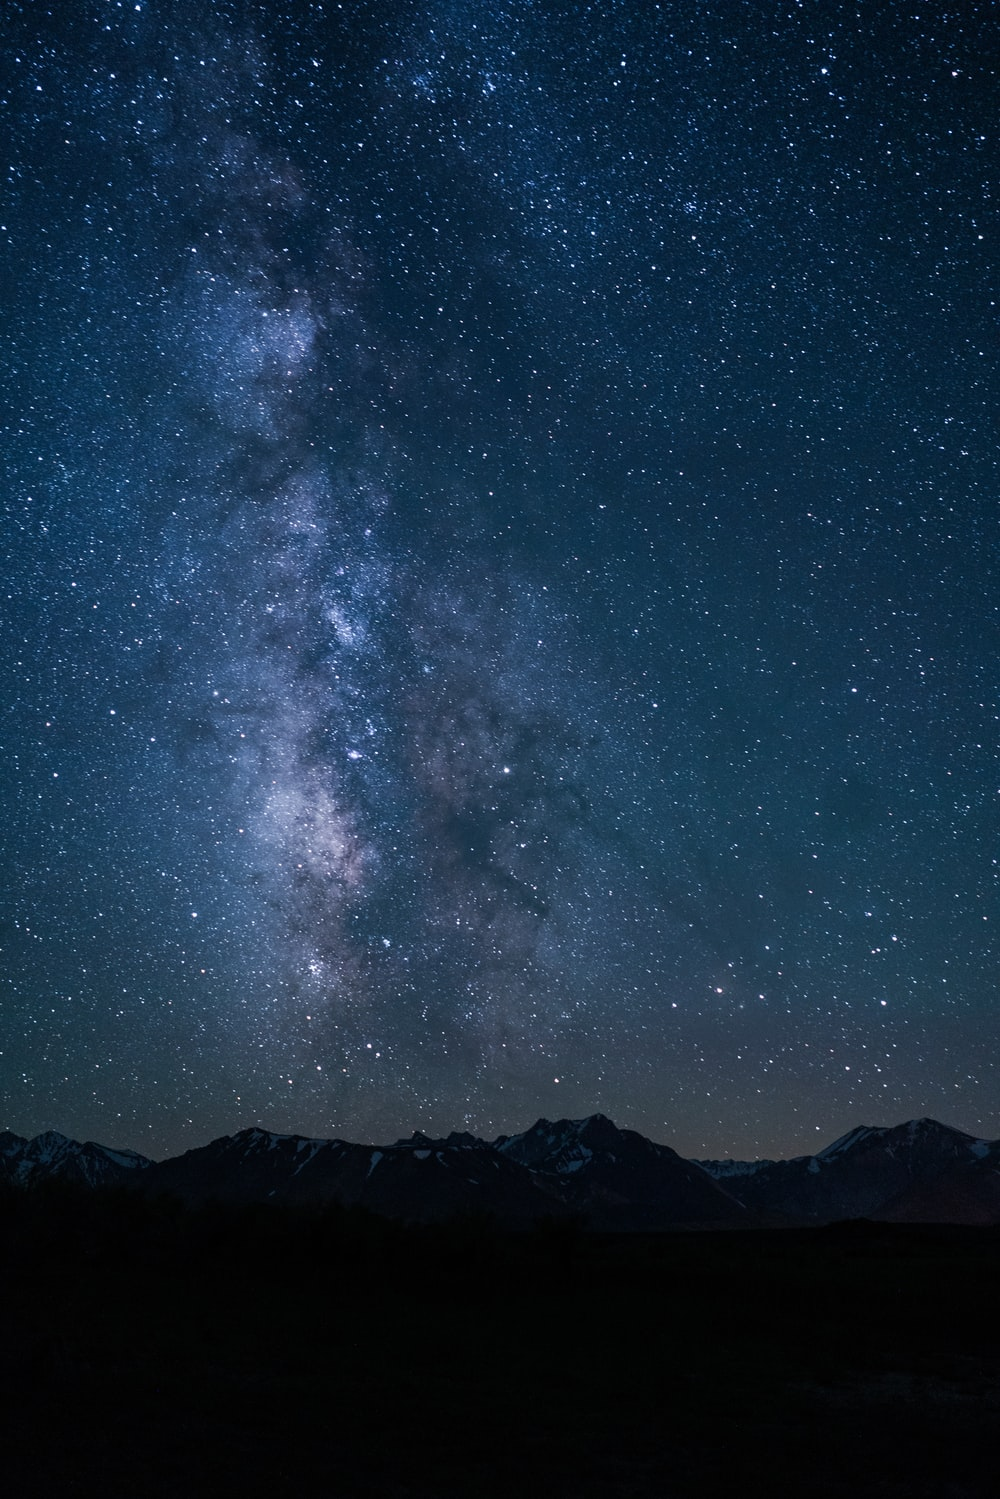 750 Starry Sky Pictures Hd Download Free Images On Unsplash